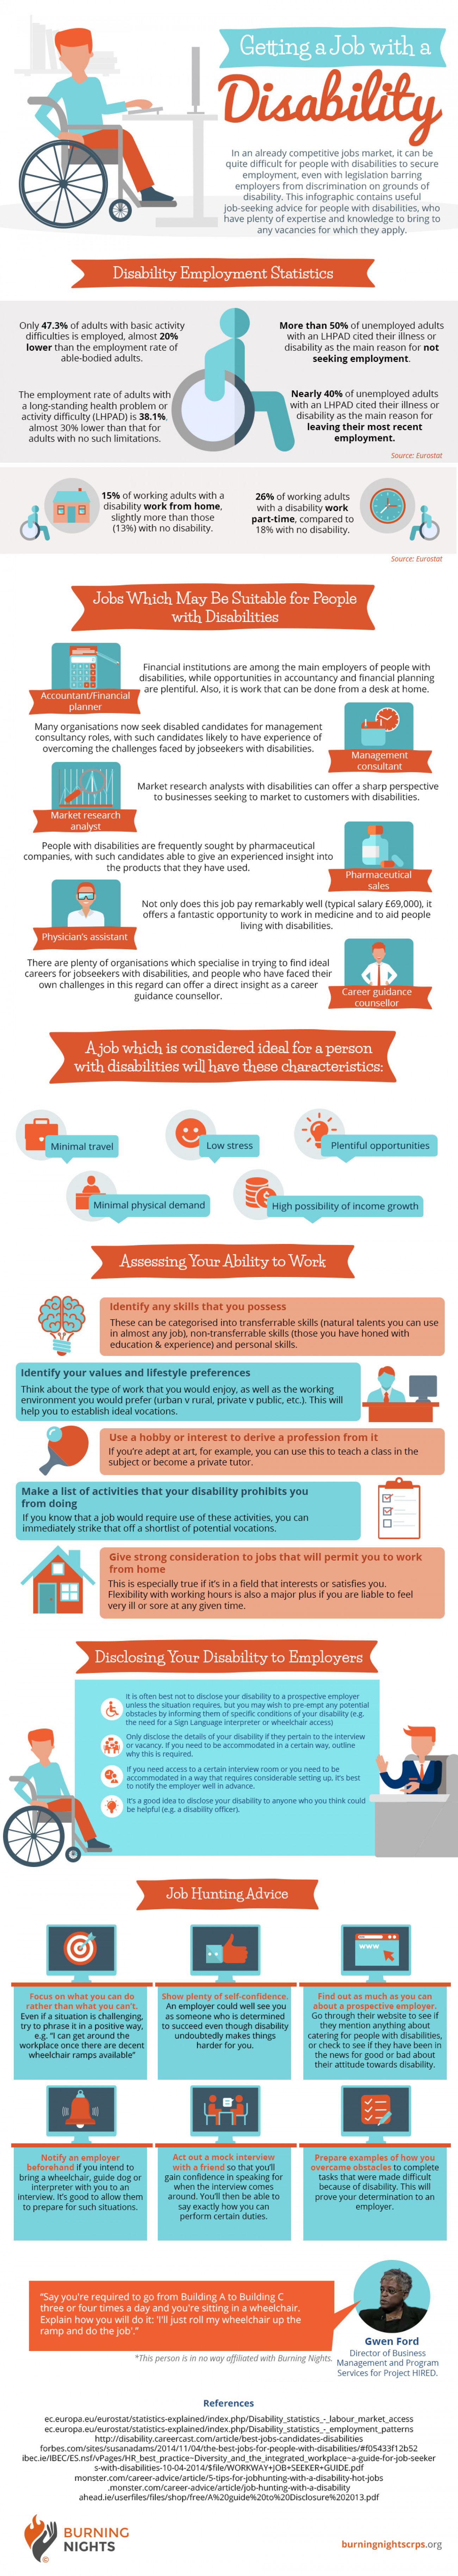 Getting-a-job-with-a-disability-Infographic.jpg